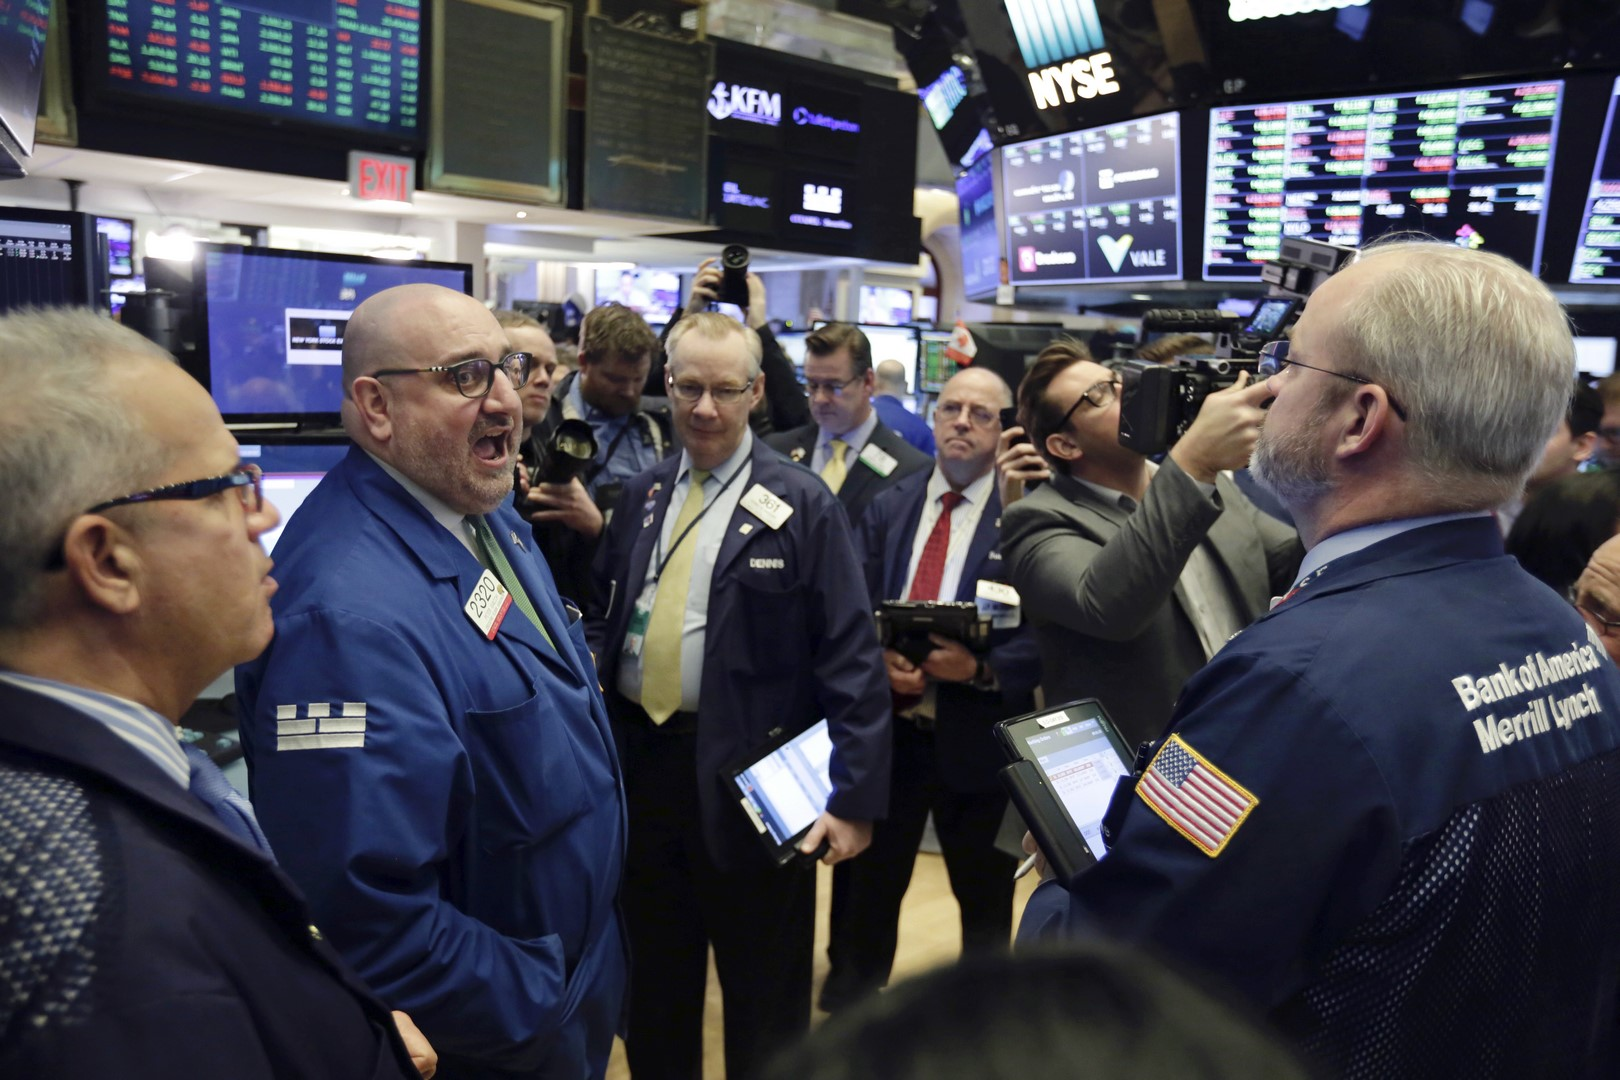 Wall Street se desploma: Dow Jones cae 1.72%